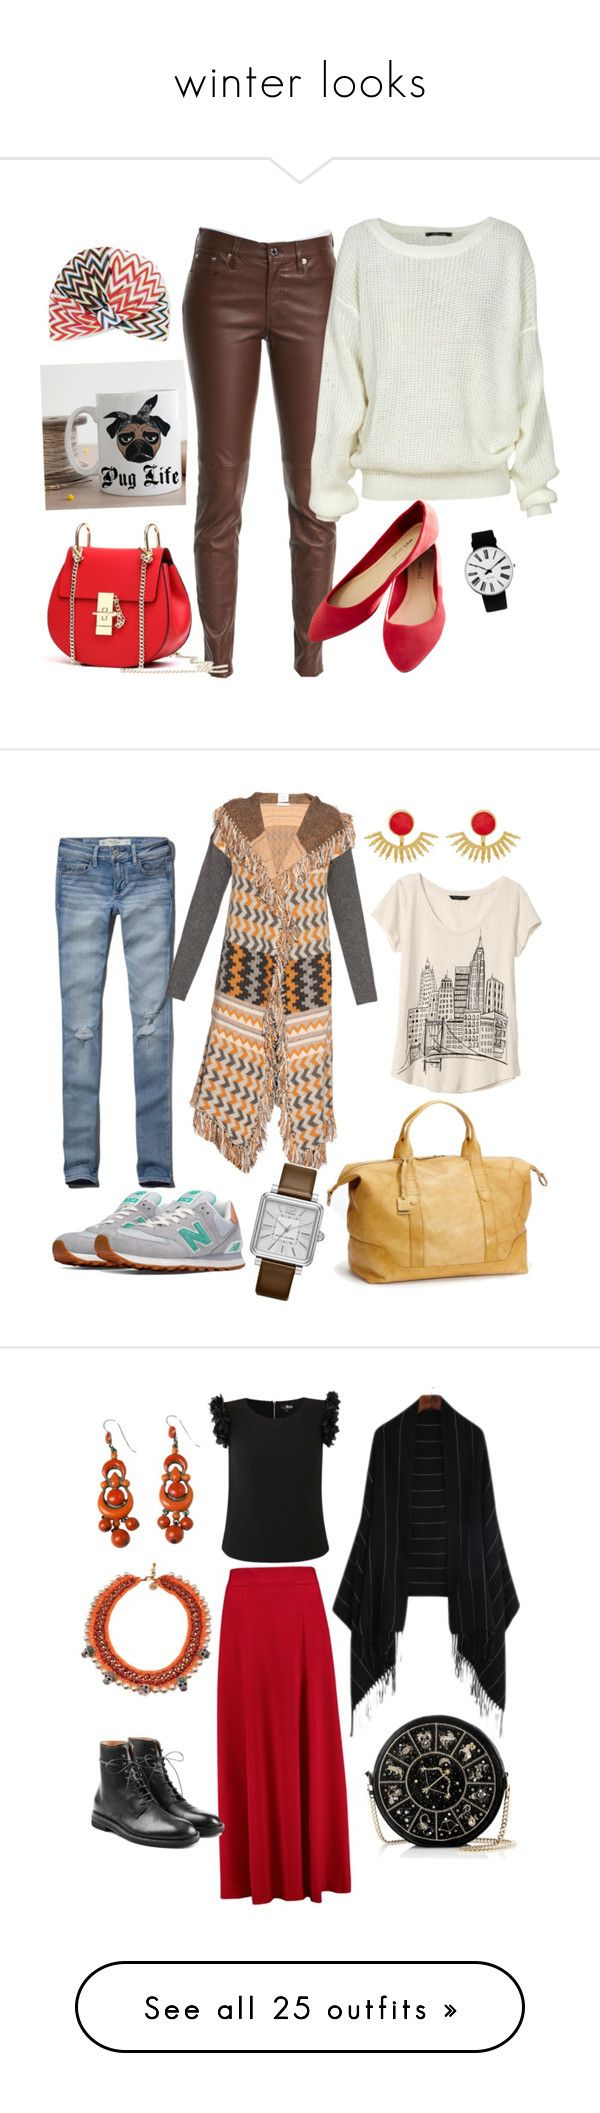 """""""winter looks"""" by maritabirken ❤ liked on Polyvore featuring Ralph Lauren Black Label, Missoni, Rosendahl, Wet Seal, New Balance, Abercrombie & Fitch, Ottoman Hands, Banjo & Matilda, Marc Jacobs and Banana Republic"""